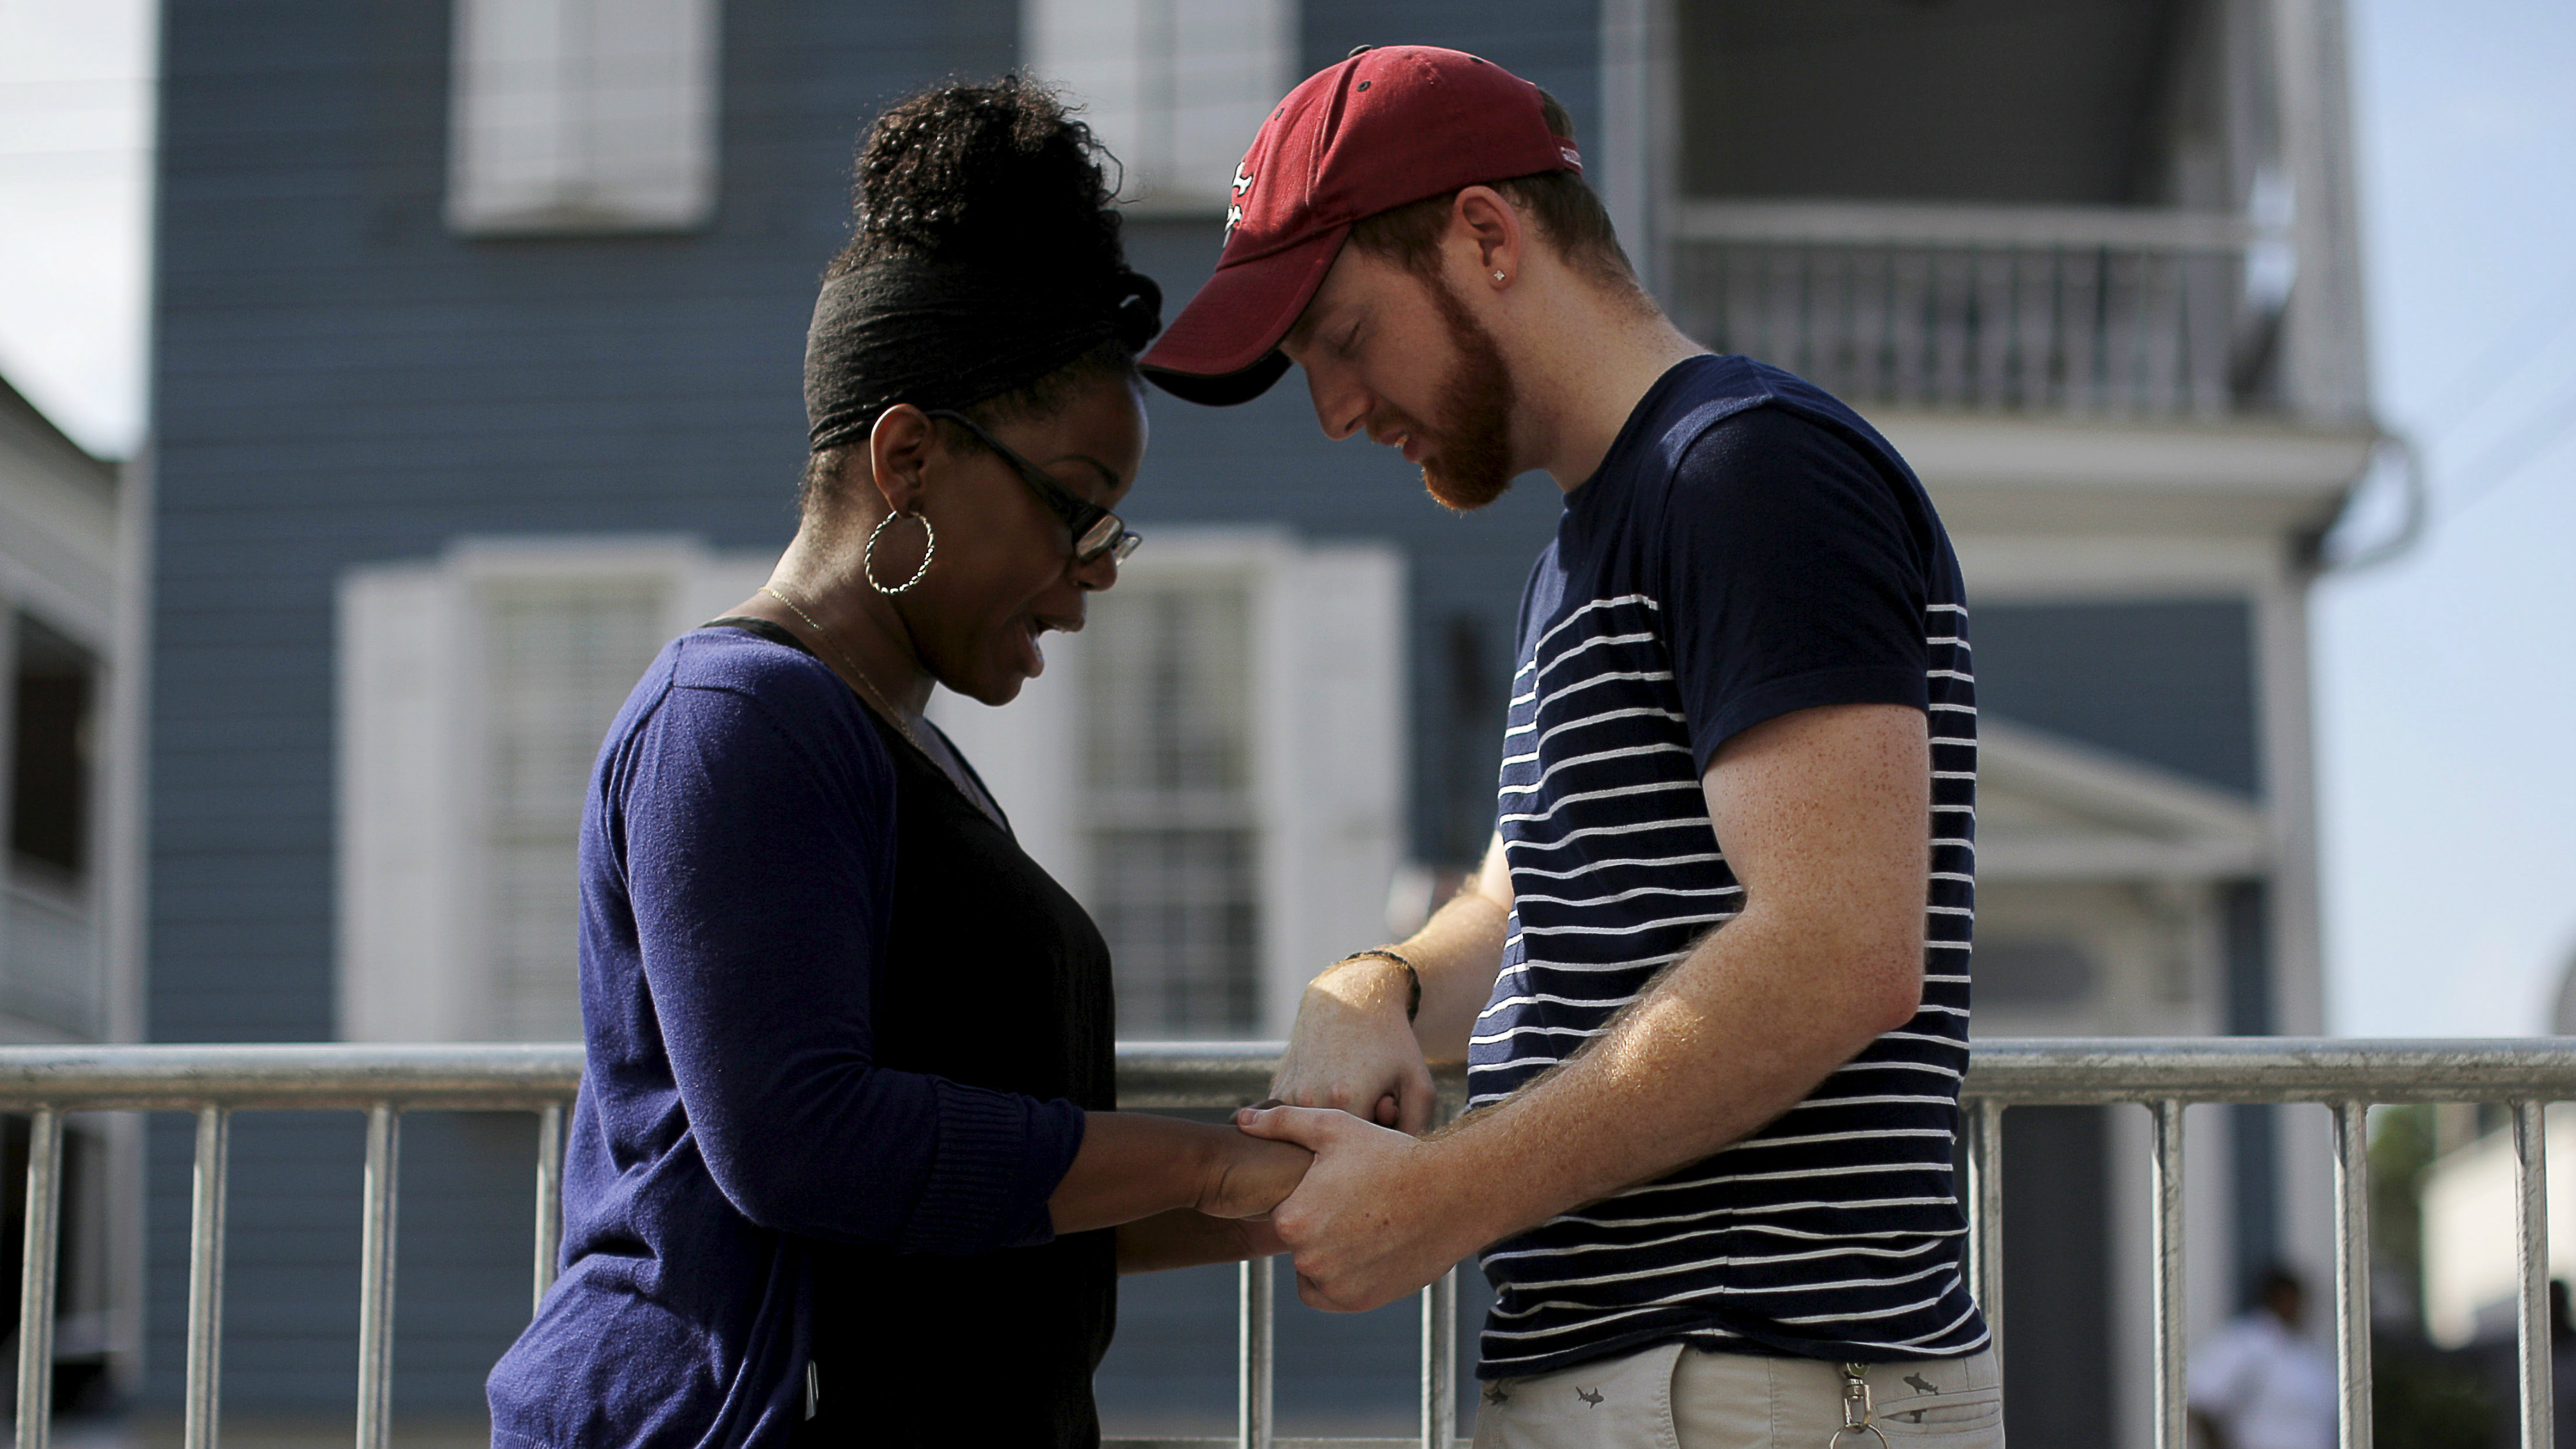 Michael Lopez (R) and a woman who asked not to be identified pray outside the Emanuel African Methodist Episcopal Church in Charleston, South Carolina June 20, 2015, three days after a mass shooting which left nine people dead during a bible study at the church. REUTERS/Brian Snyder